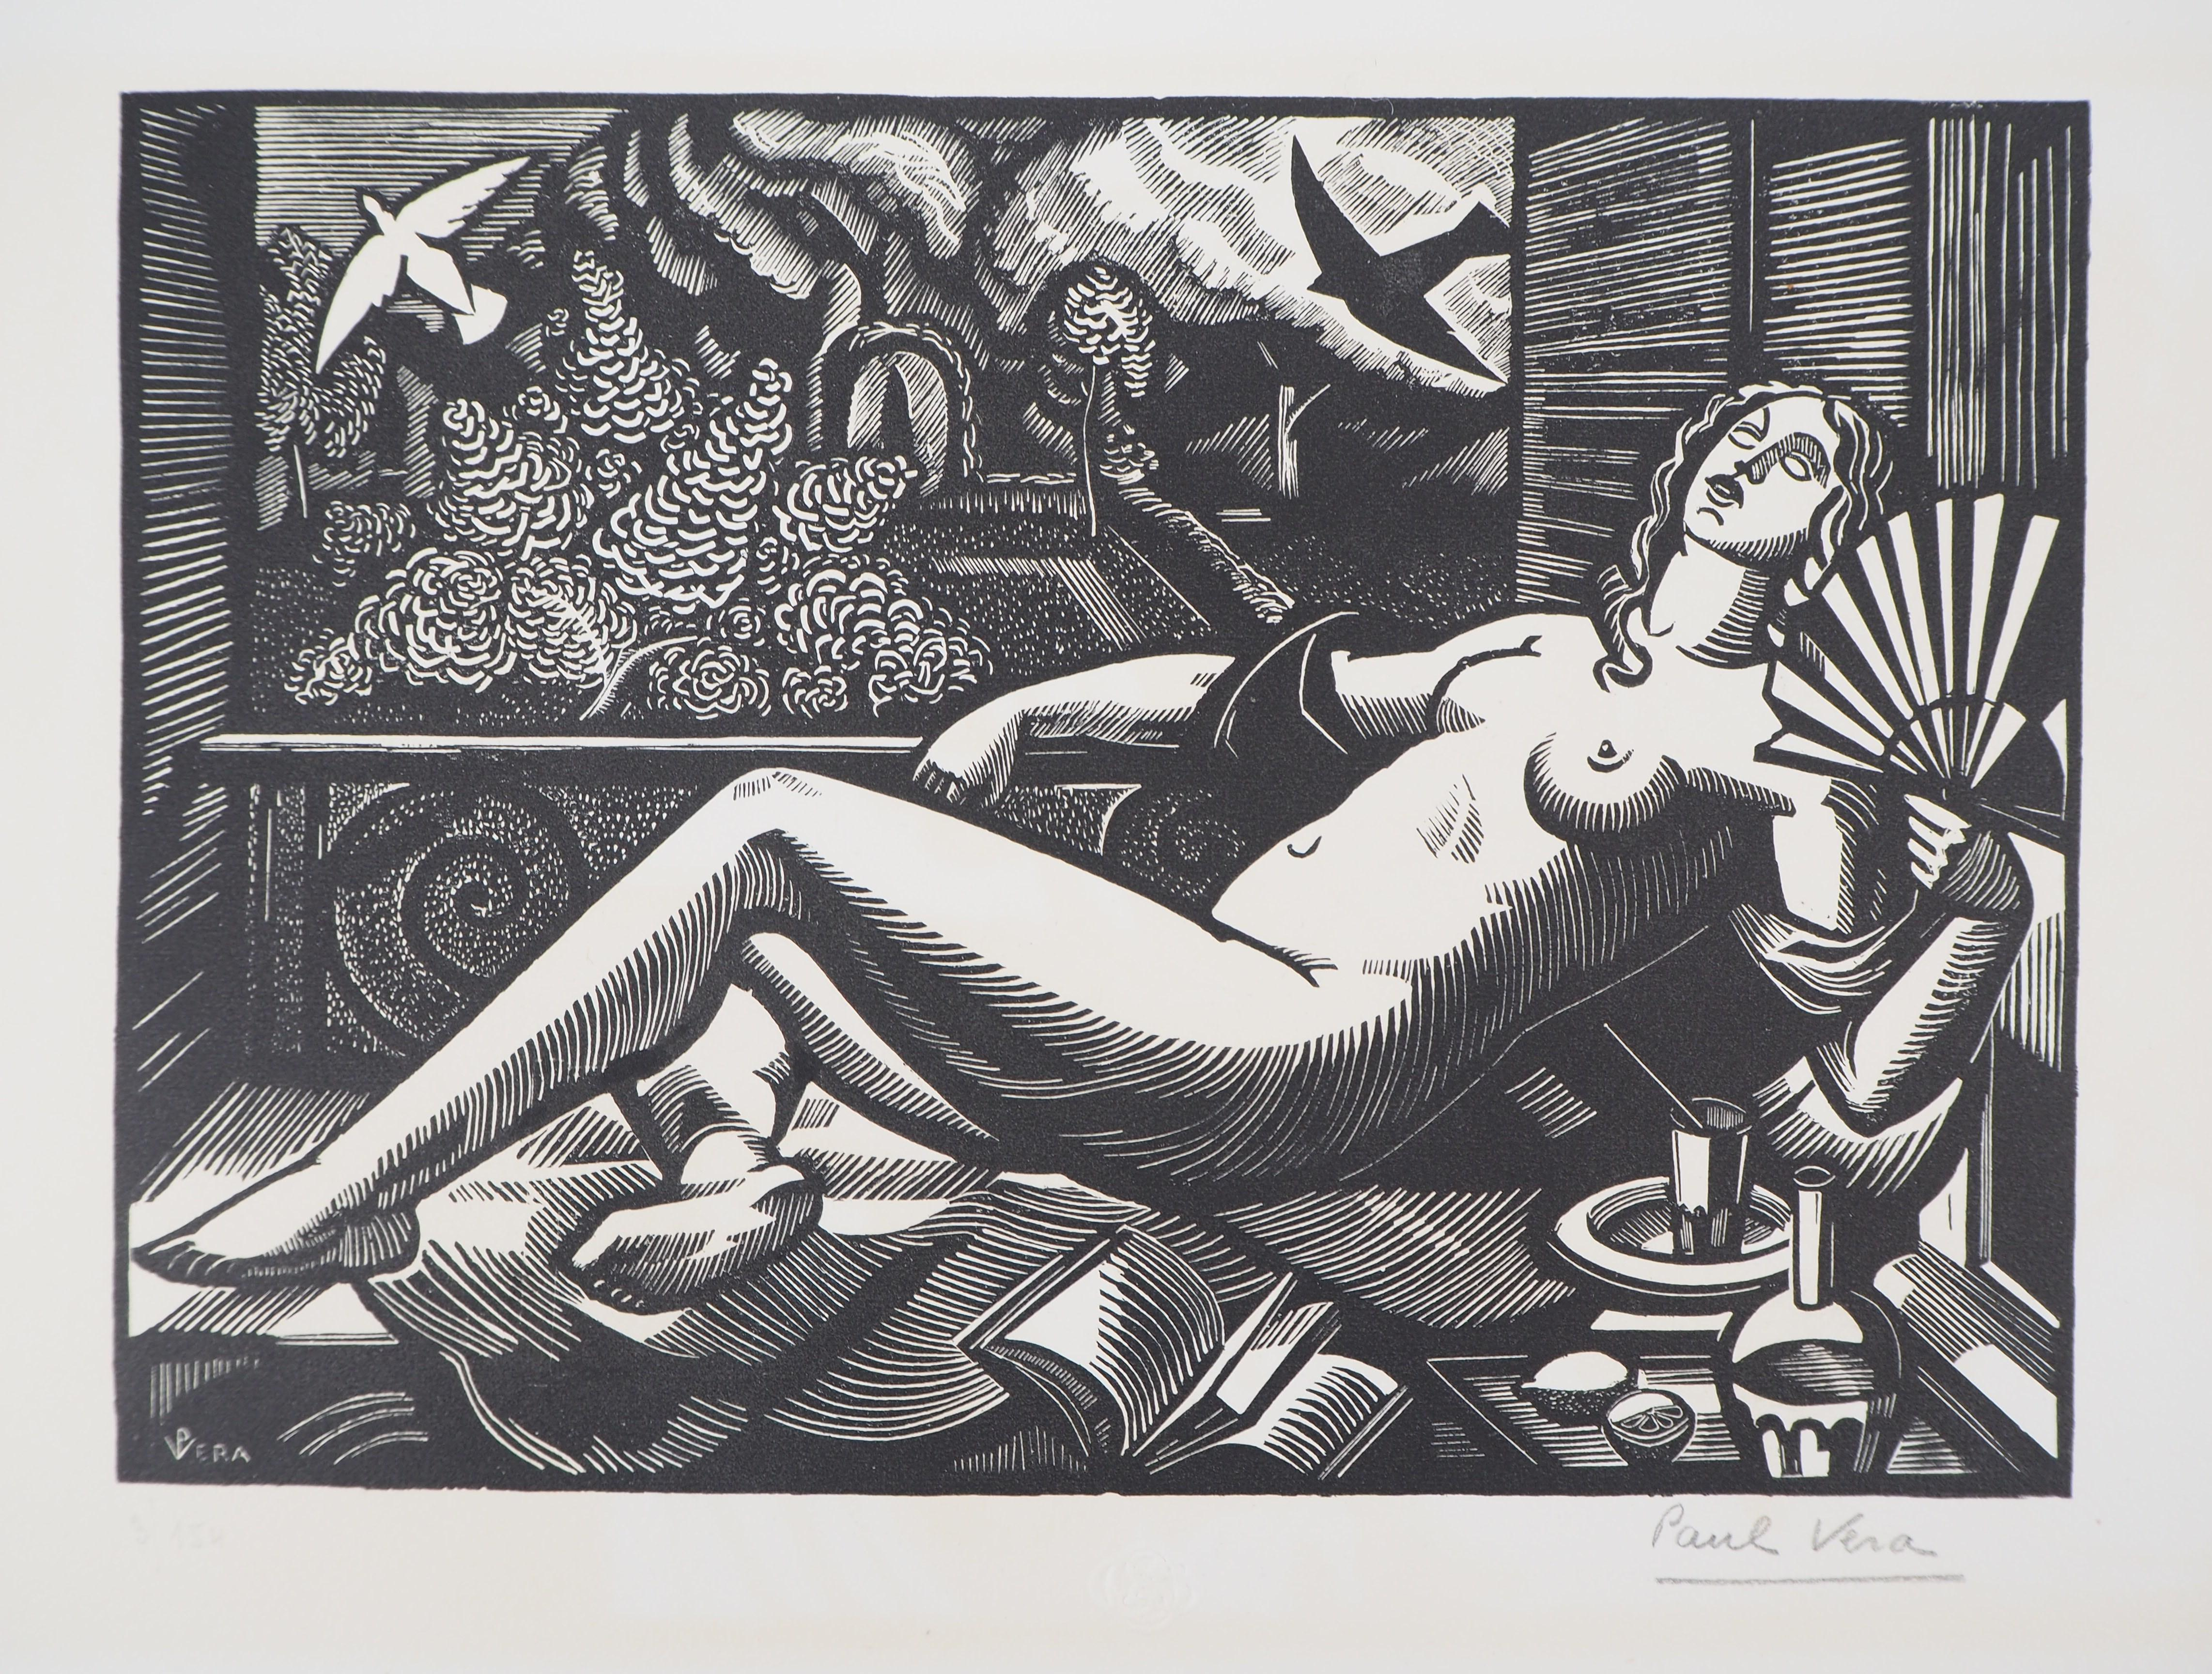 Summer : Nude with a Fan - Original woodcut, Handsigned